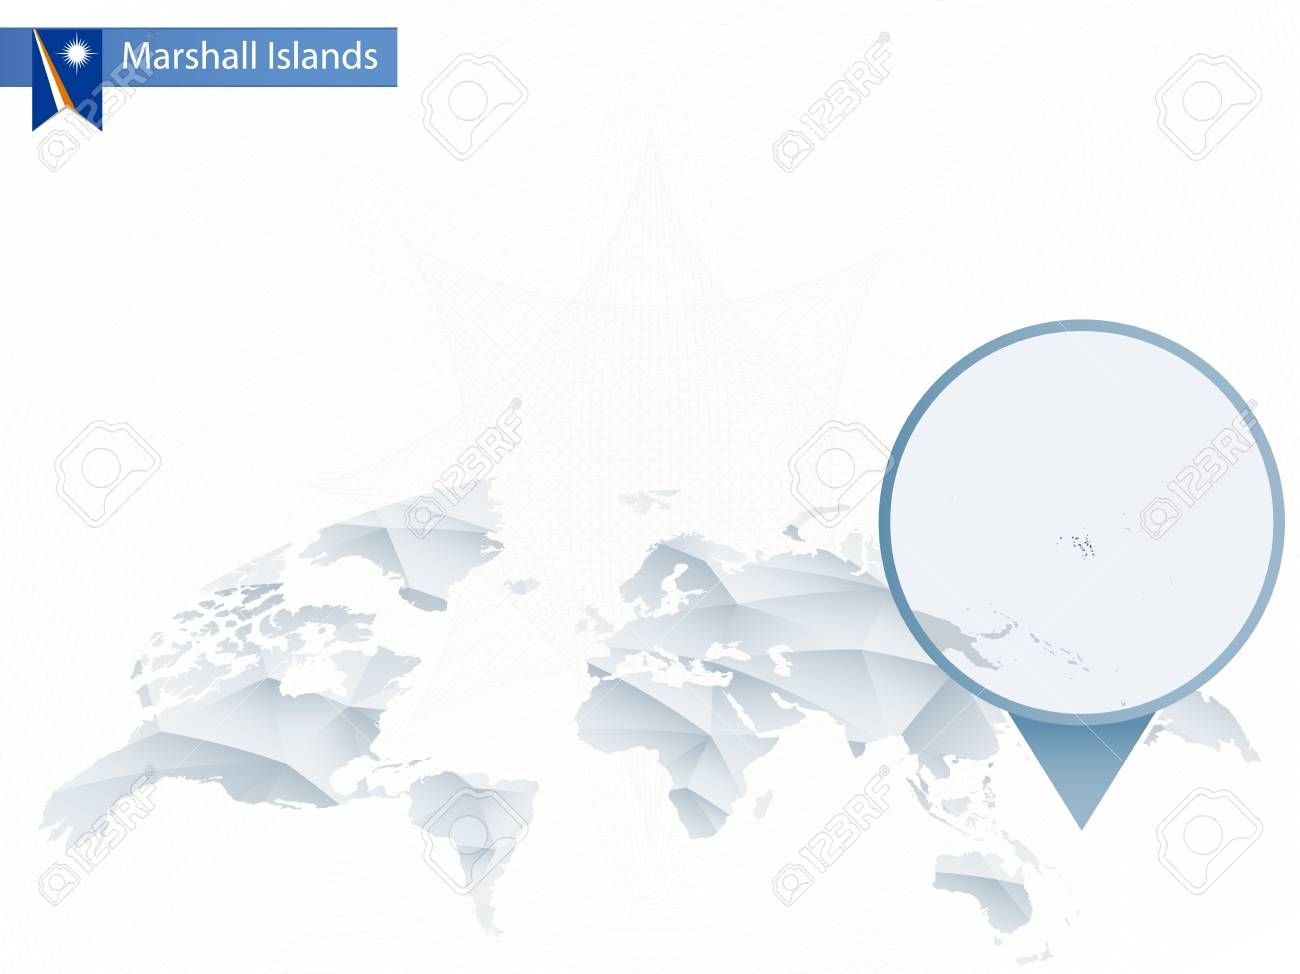 Abstract Rounded World Map With Pinned Detailed Marshall Islands ...